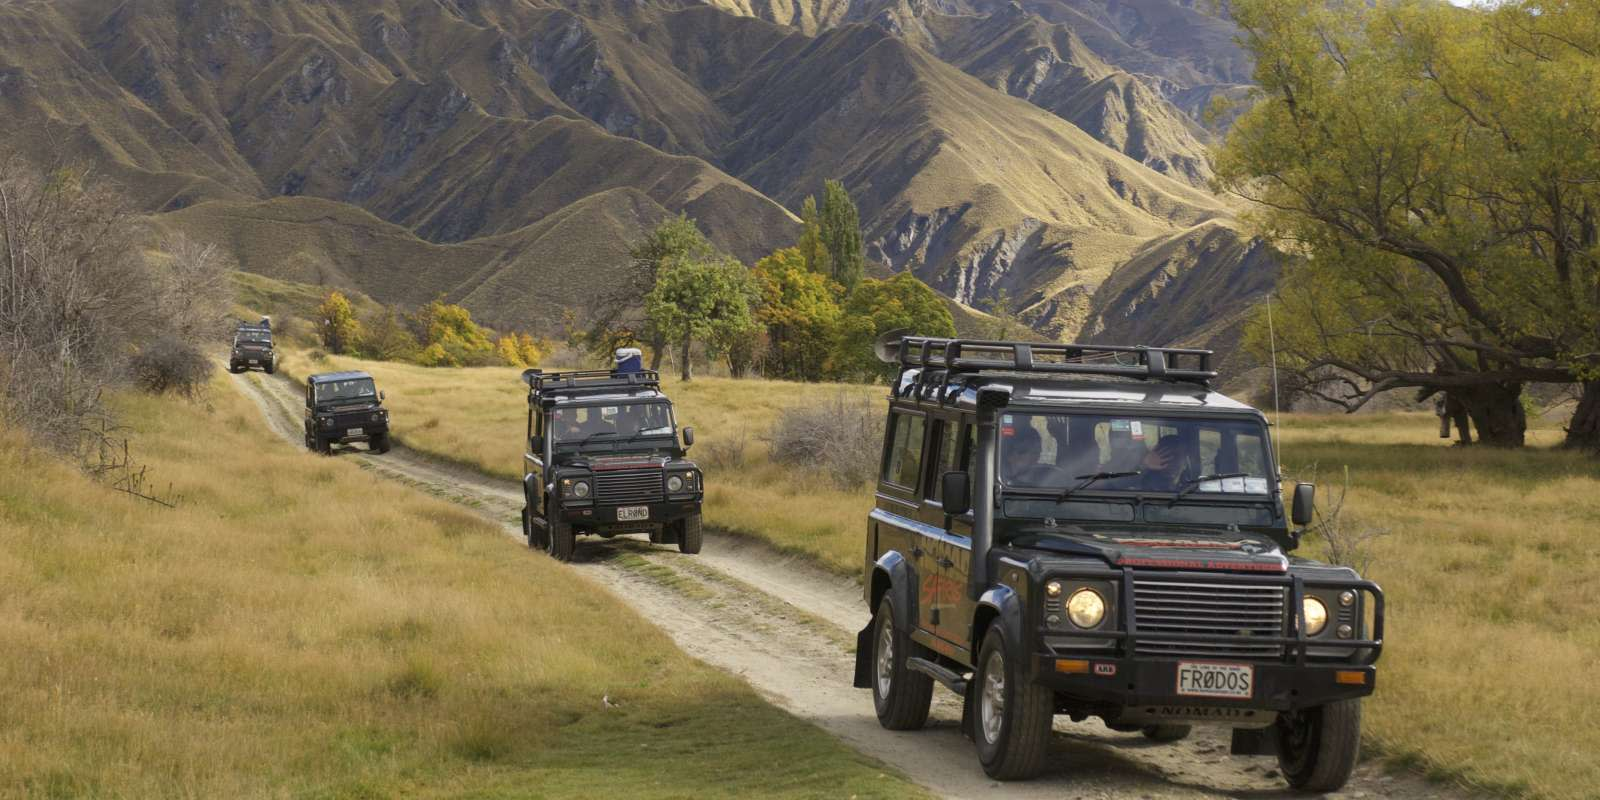 Nomad4WD, Macetown, Arrowtown 4WD, Nomad Safaris